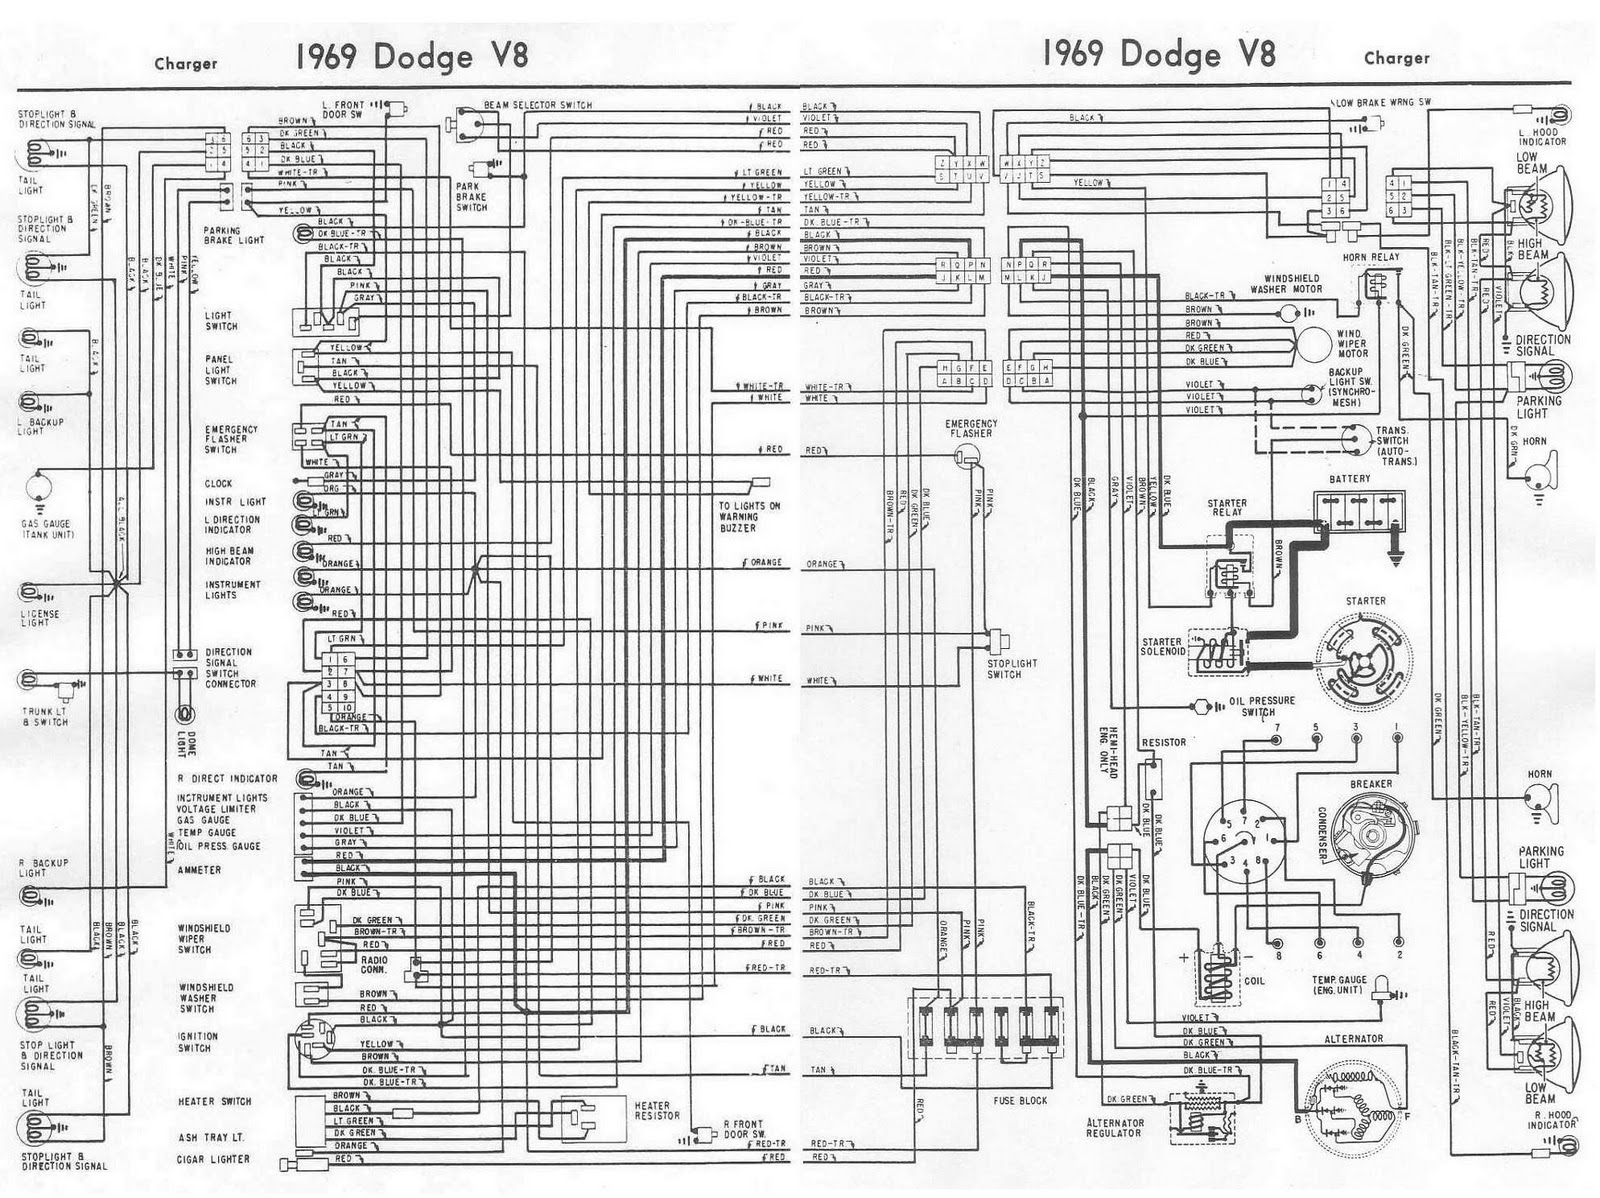 68 charger wiring diagram for dash